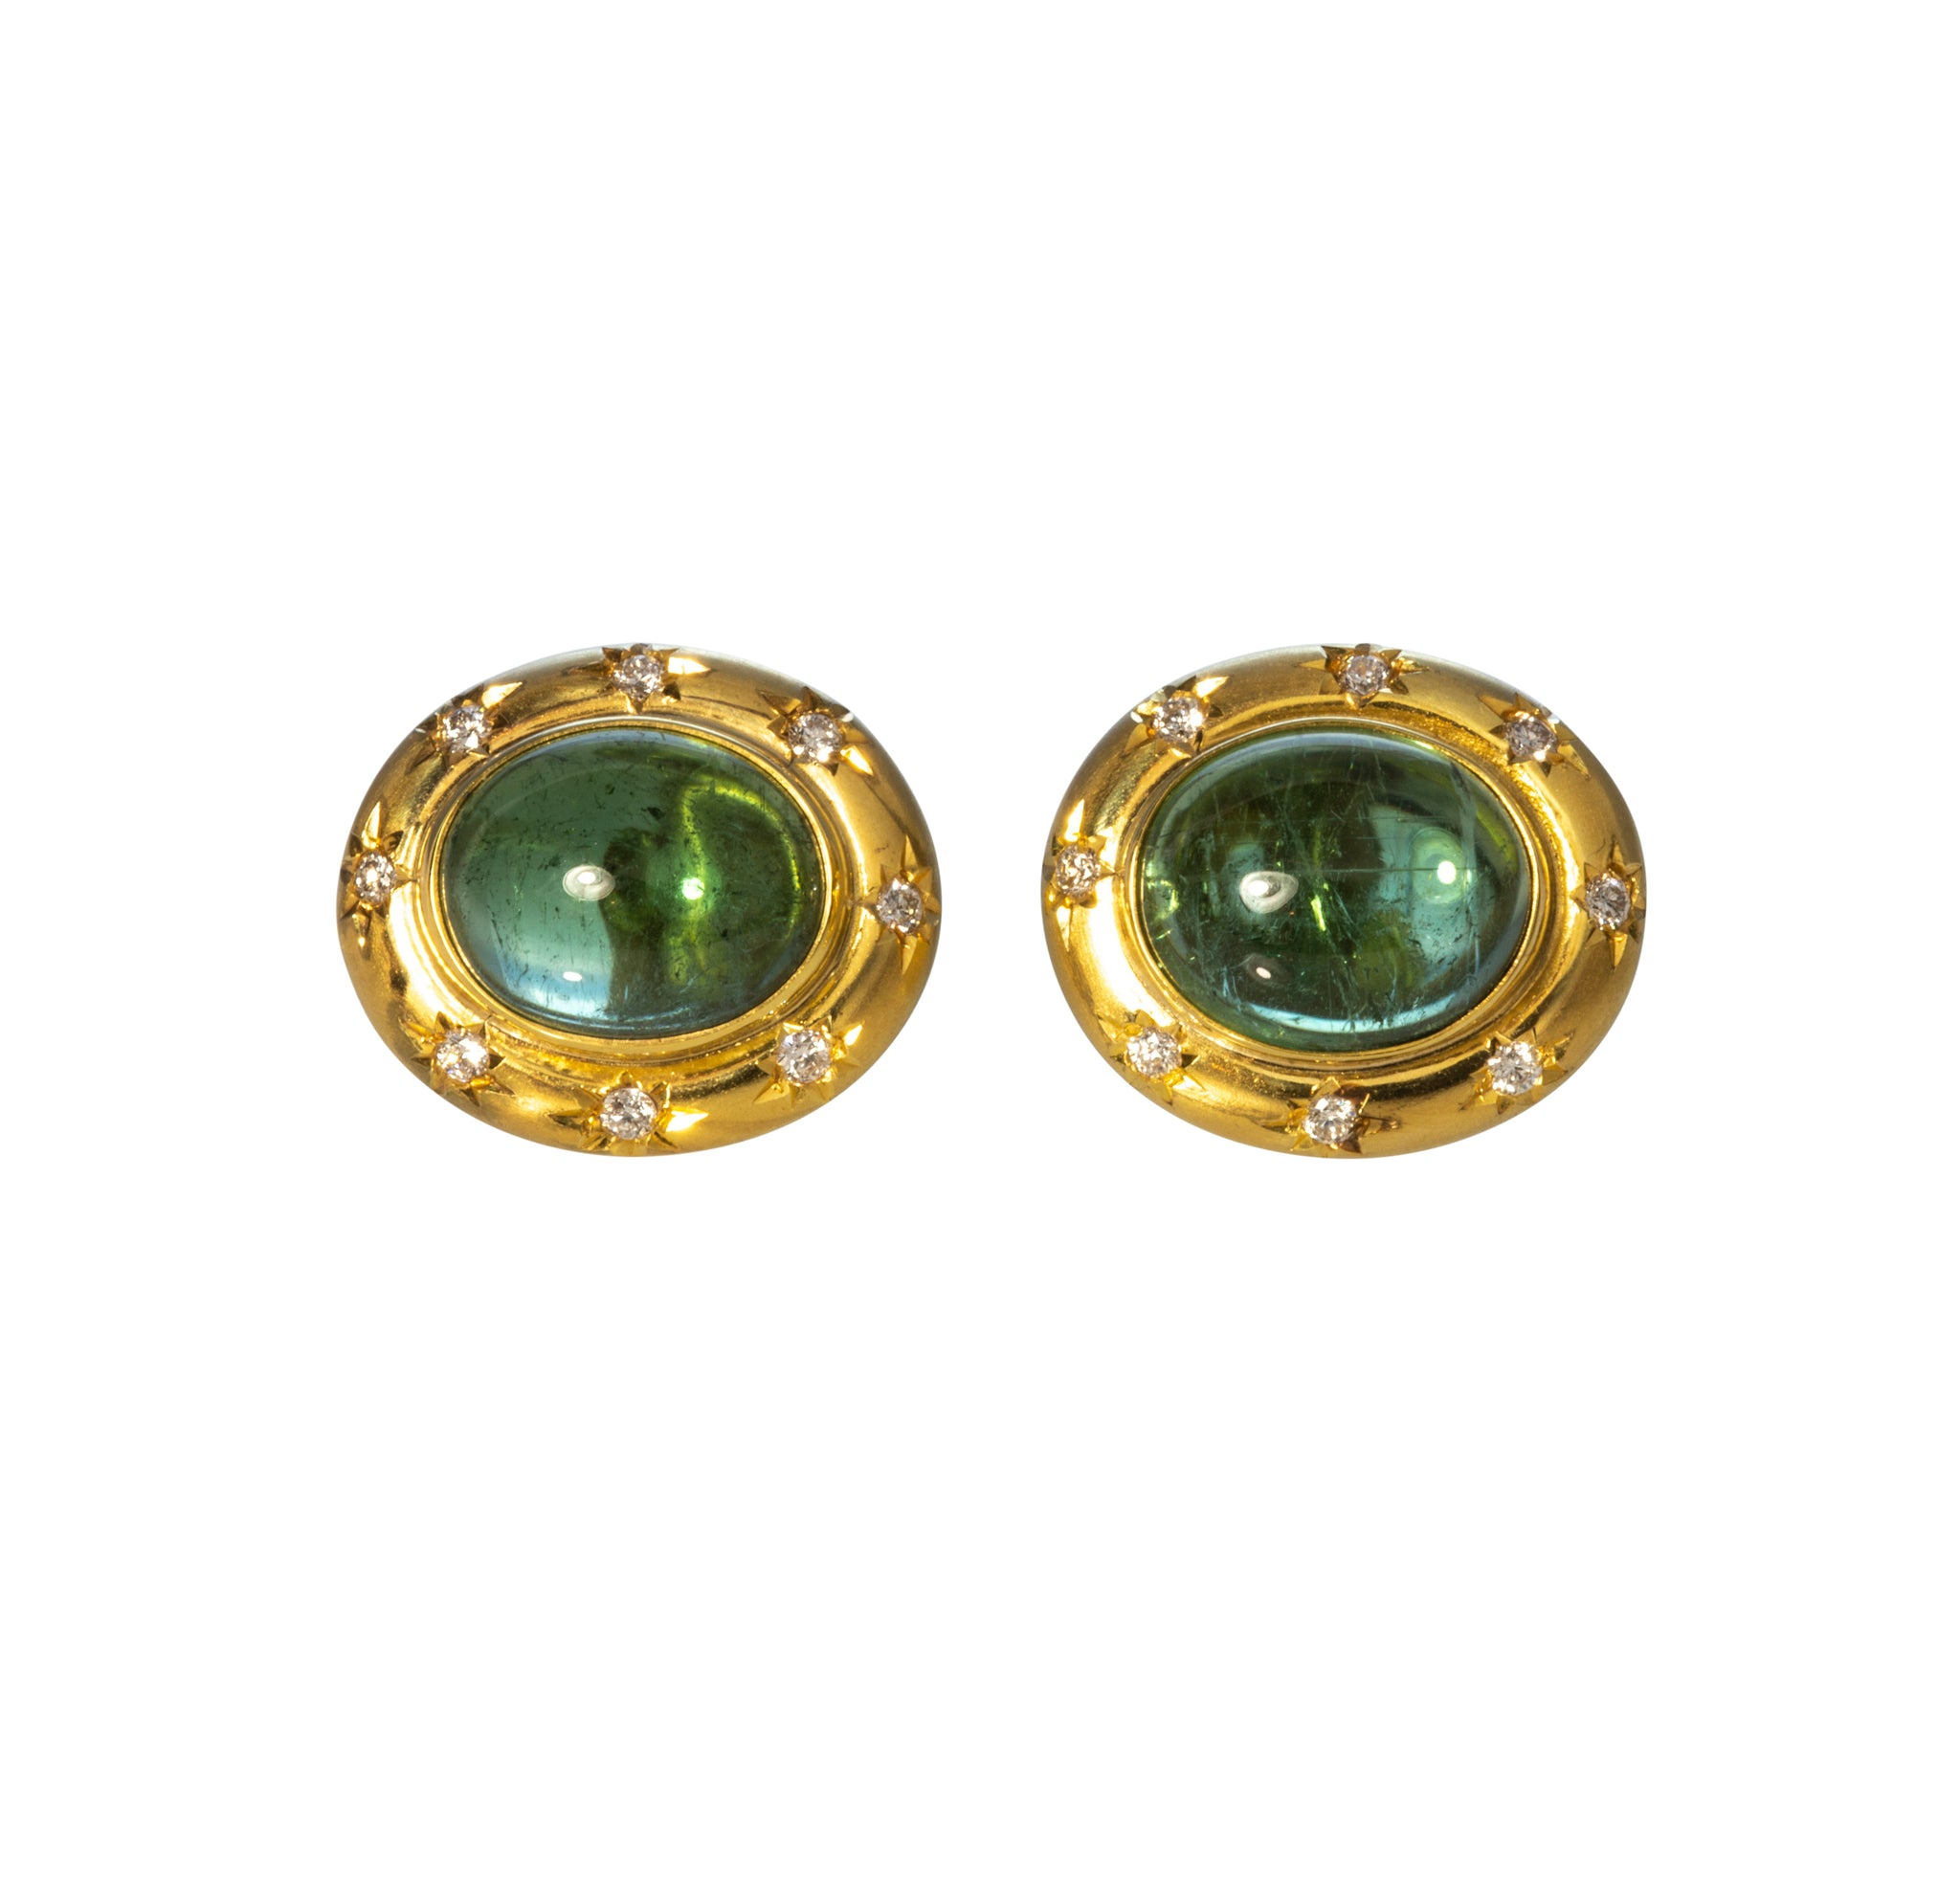 Mazza Green Tourmaline & Diamond 14K Gold Earrings